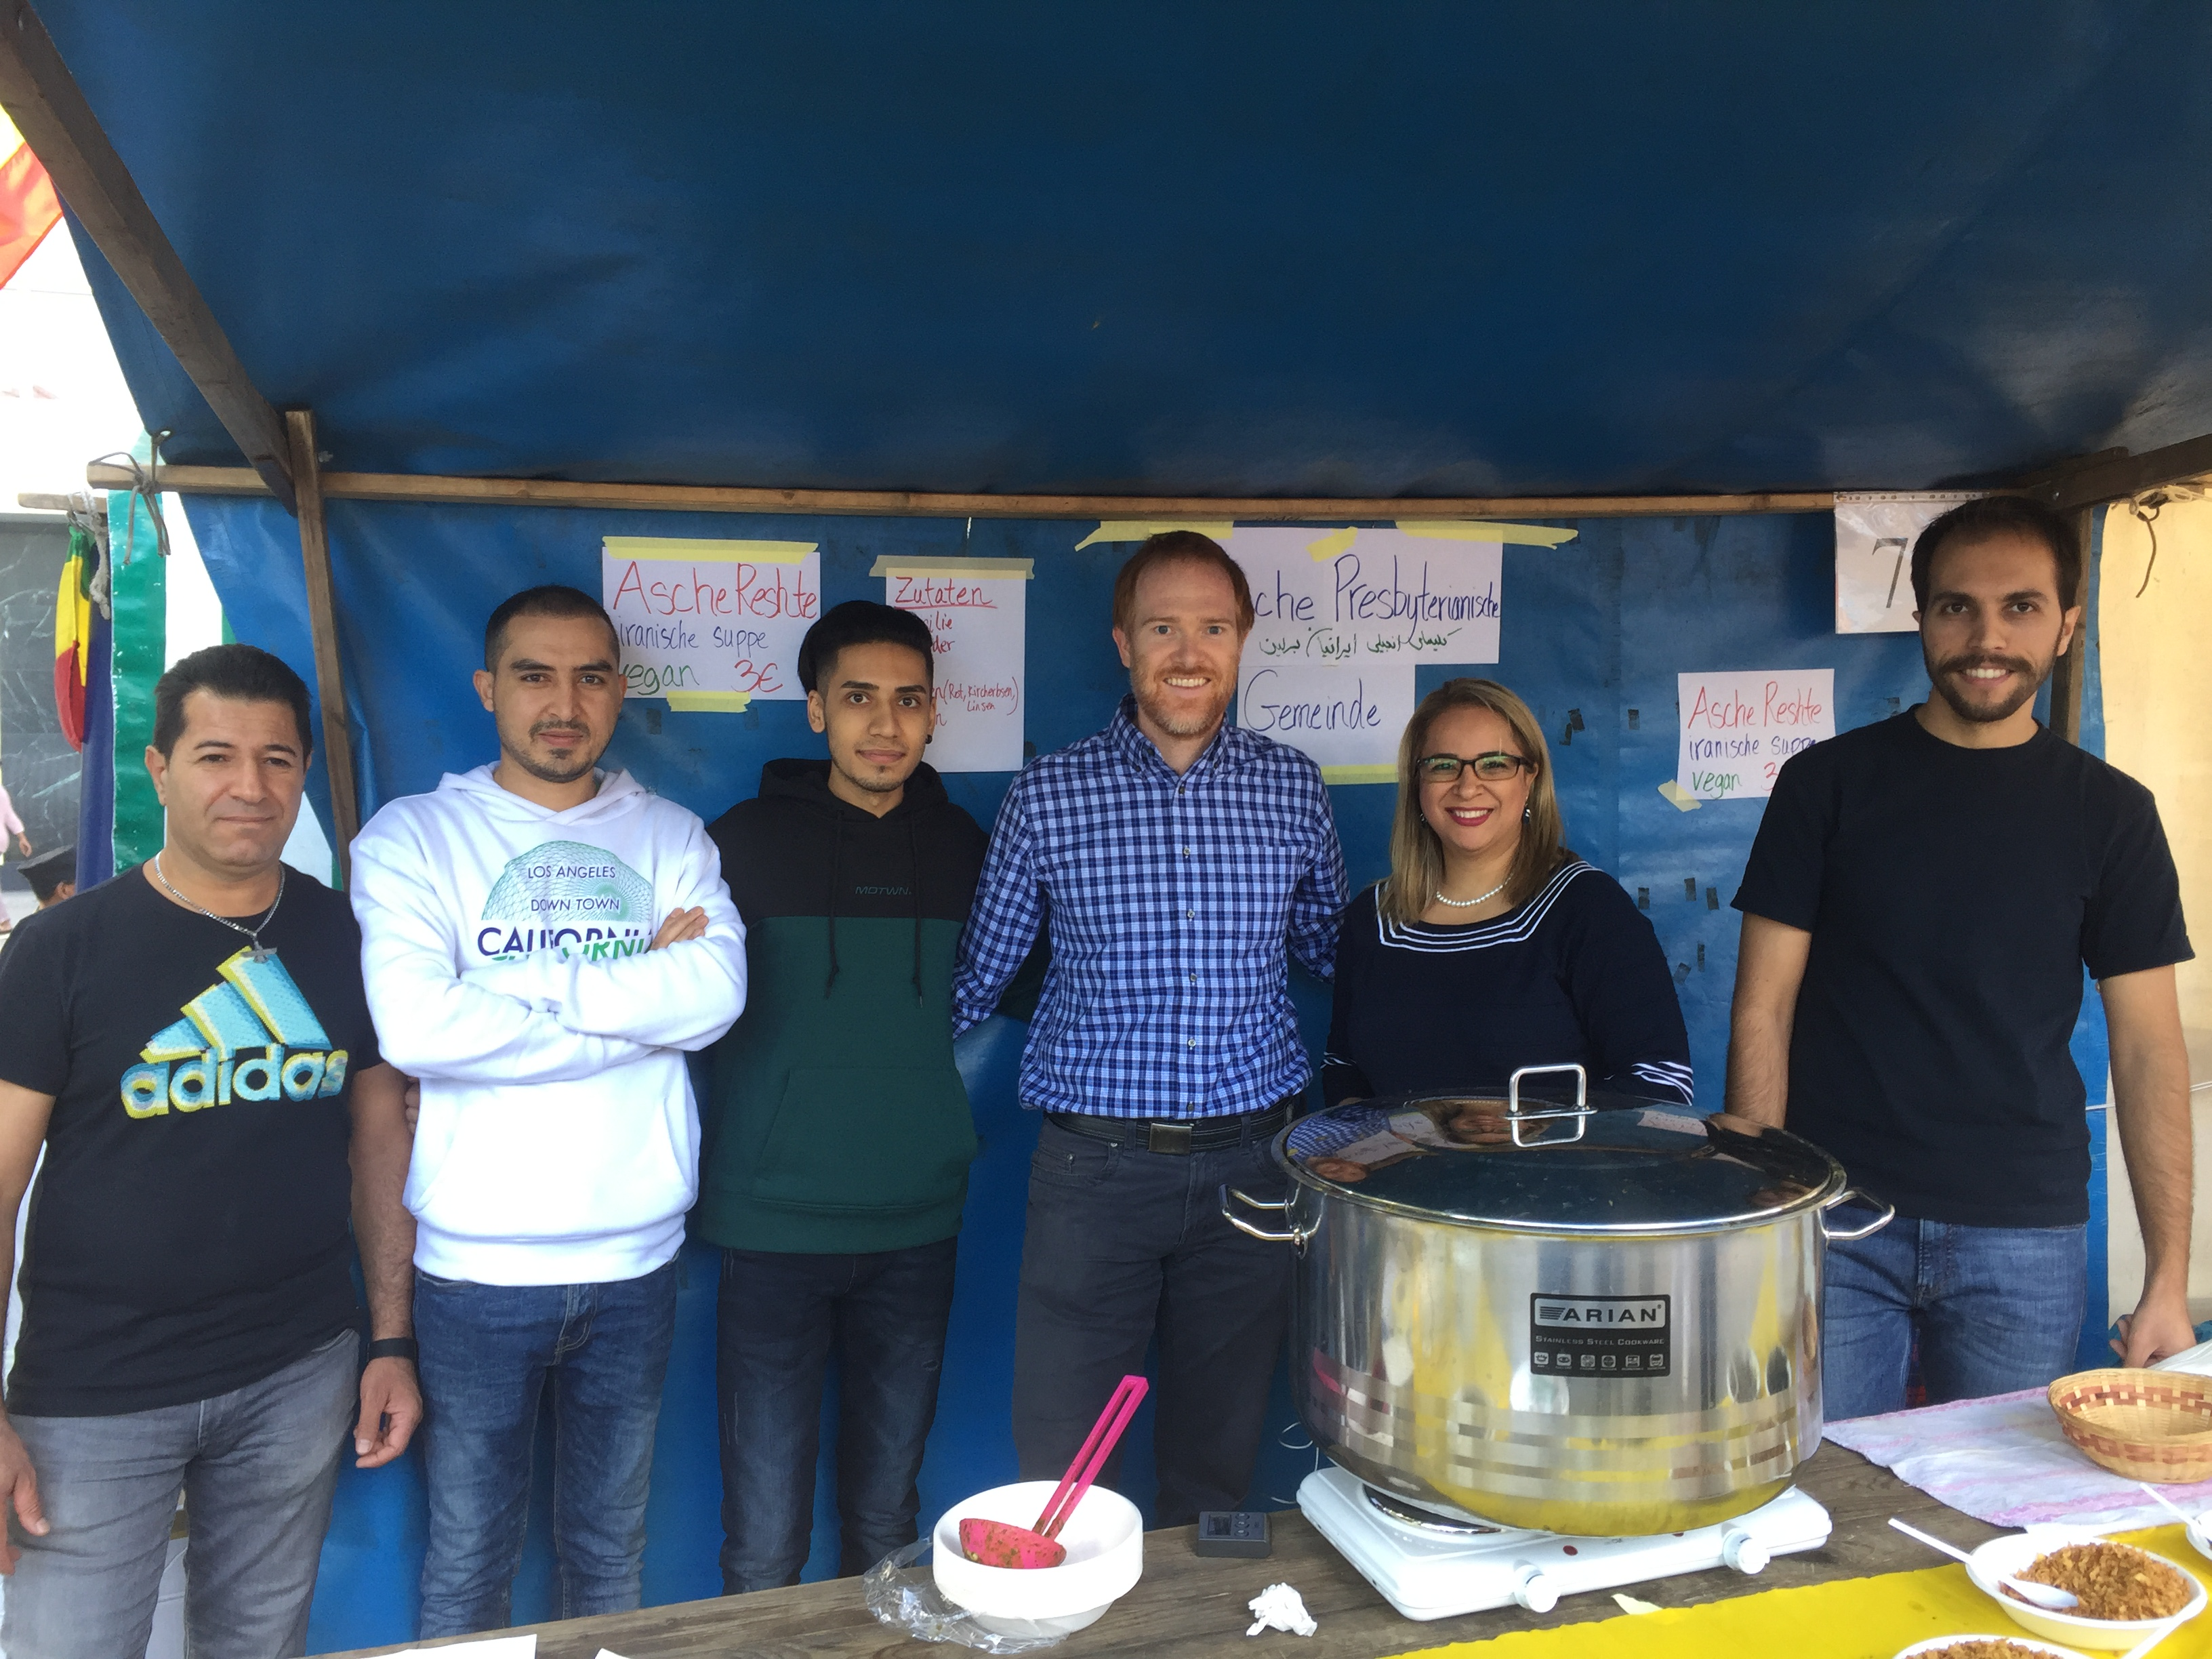 Volunteers at the Iranian Presbyterian Church food booth at the Fest der Kirchen.